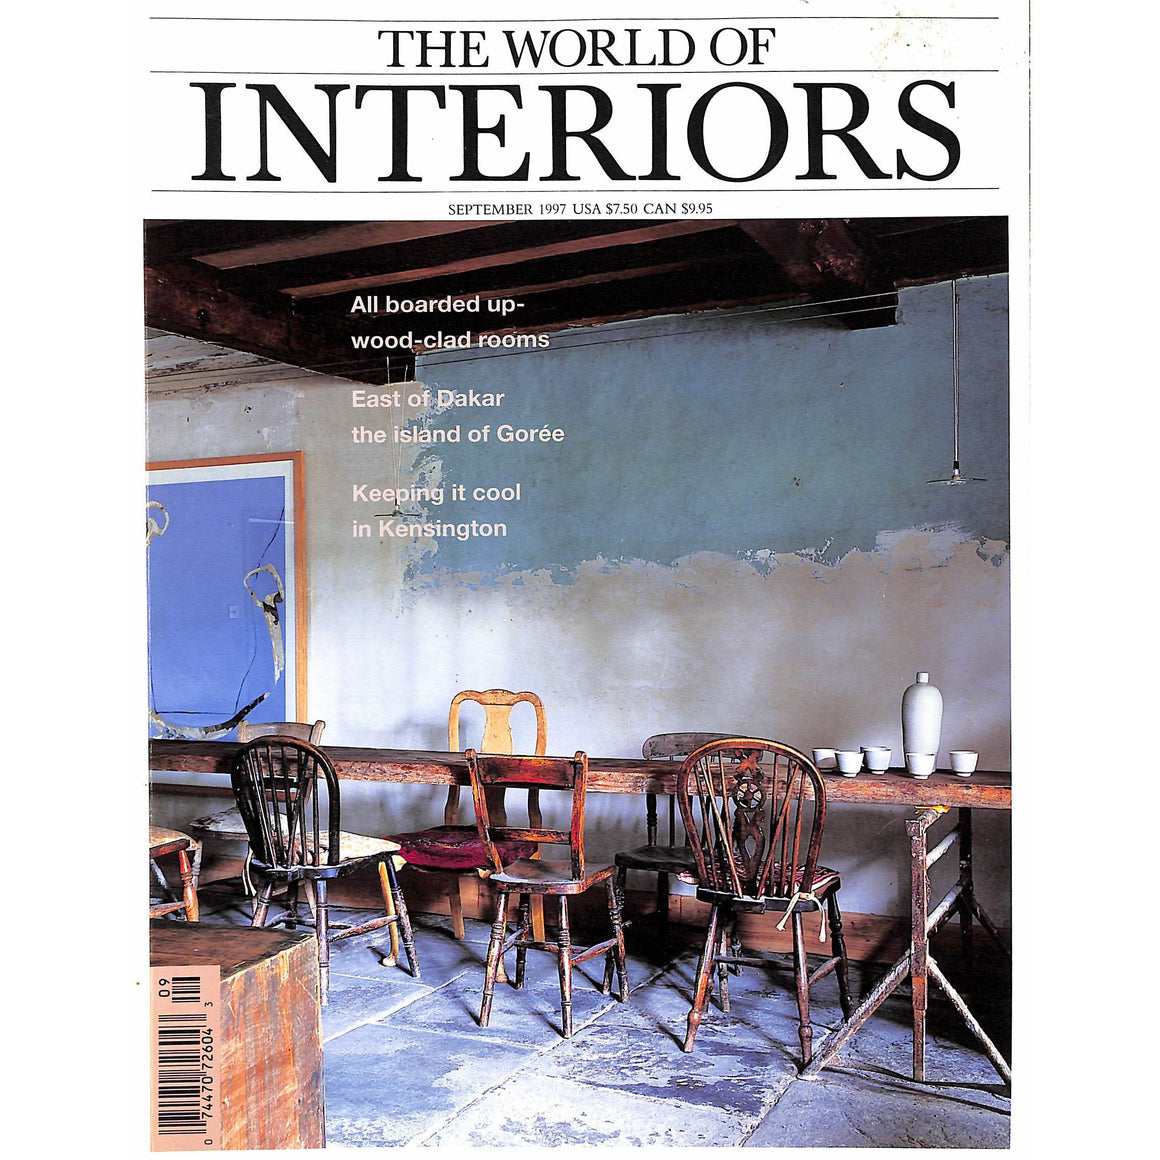 The World of Interiors September 1997 (Sold!)